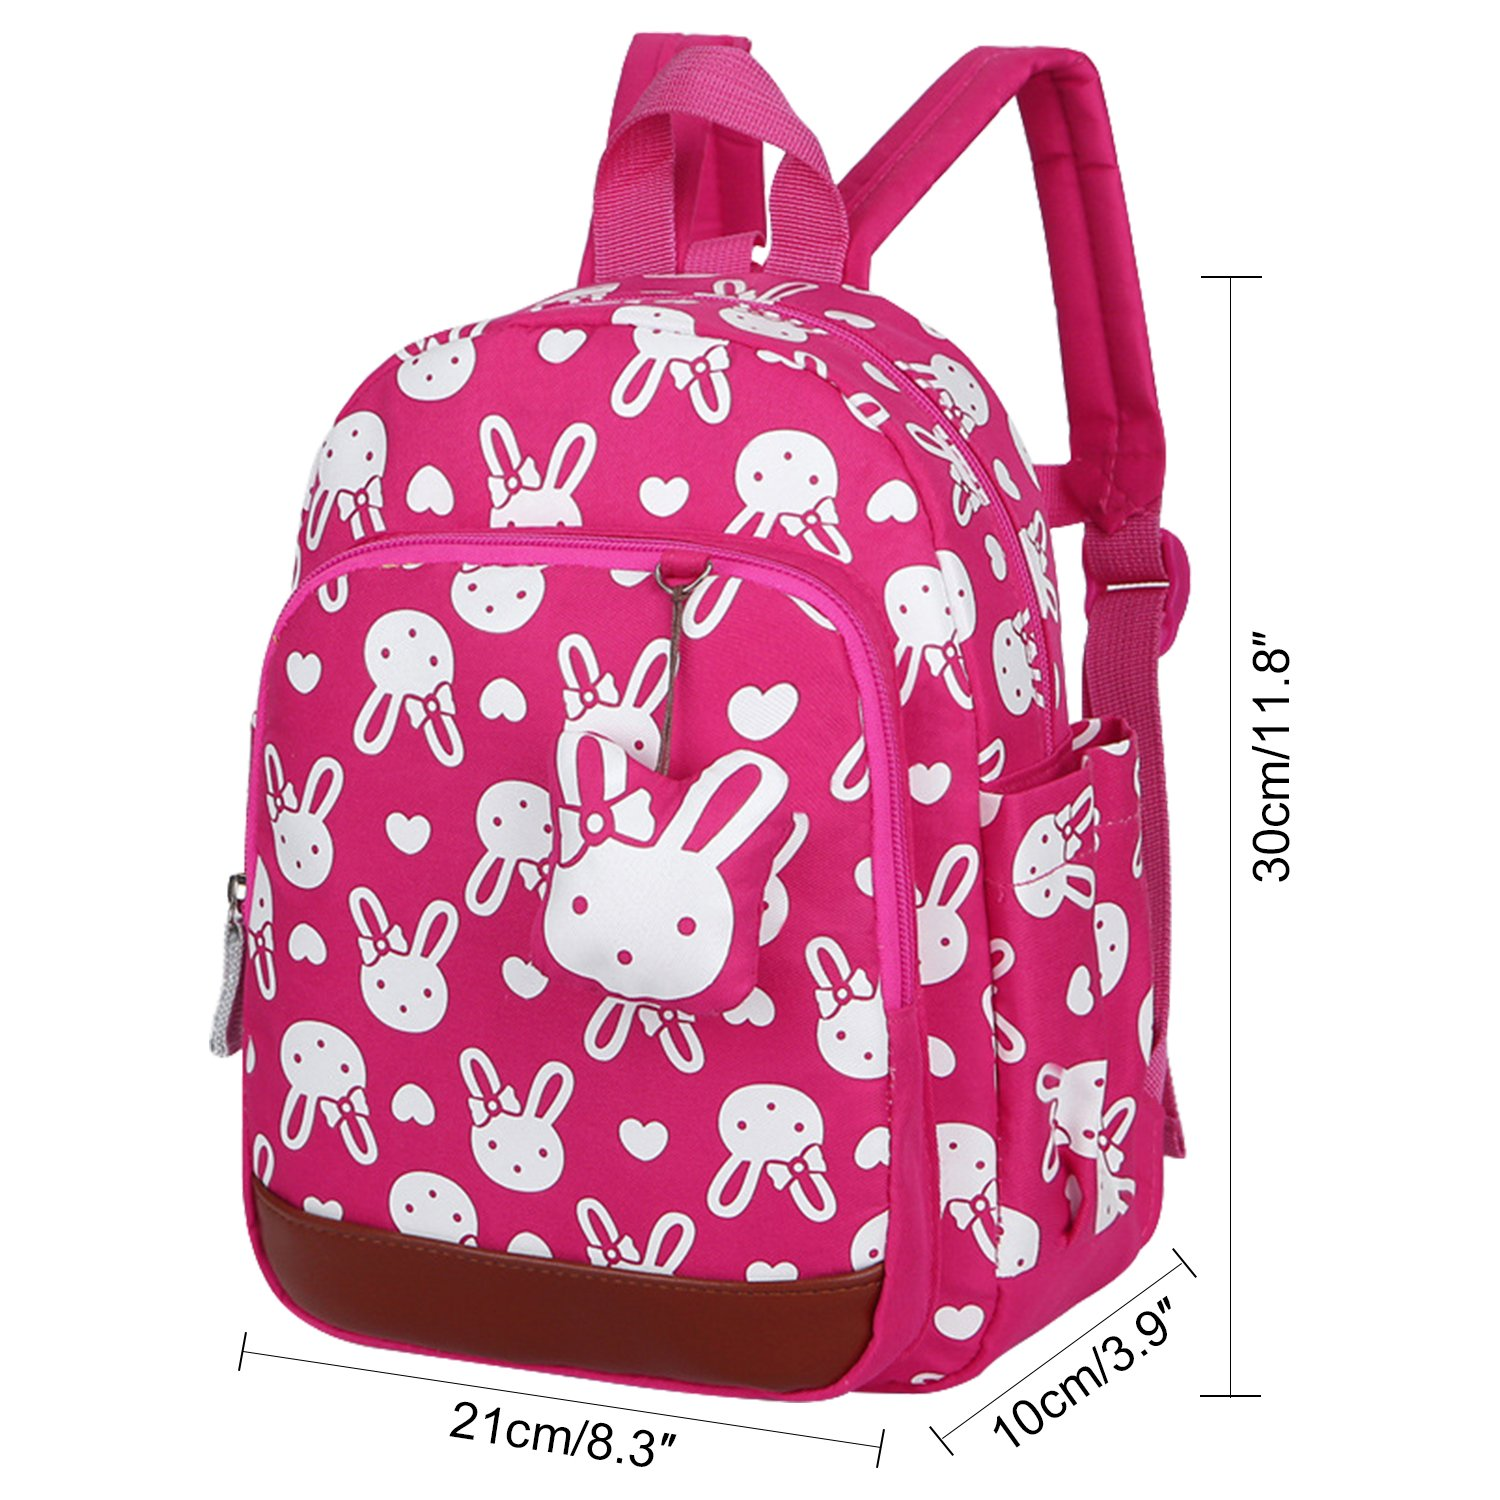 dfe69163e3 Amazon.com  Vox Small Backpack for Kids Baby Girls with Safety Harness